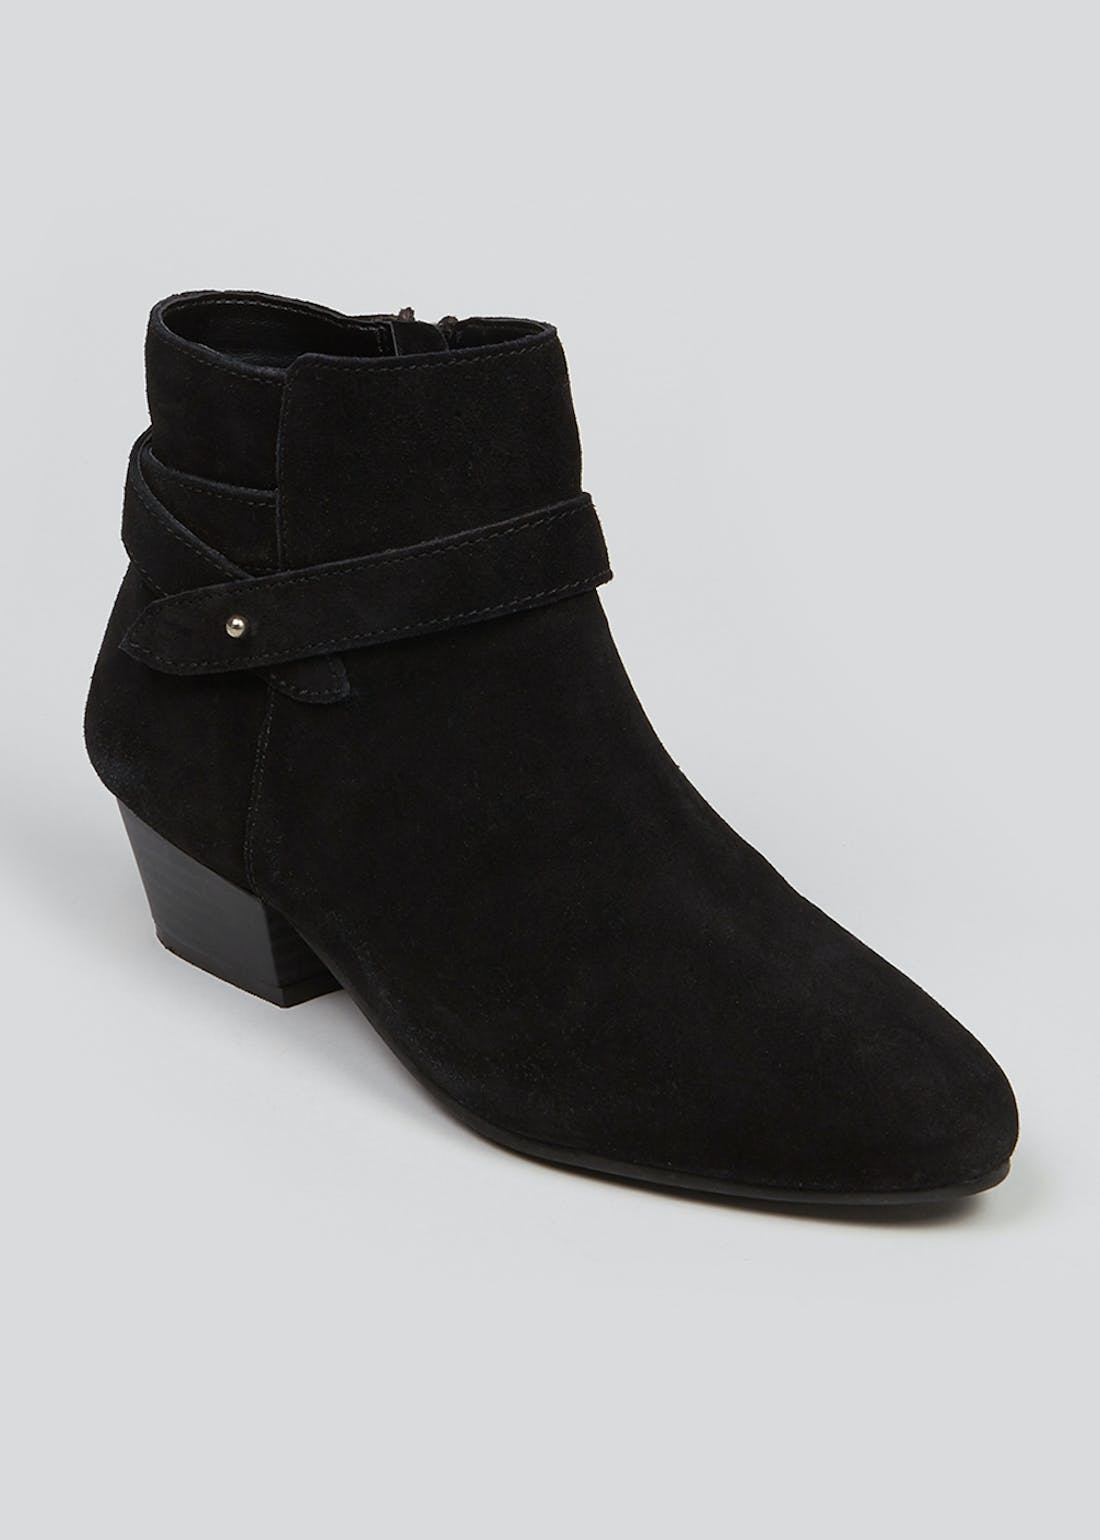 Soleflex Black Suede Ankle Boots